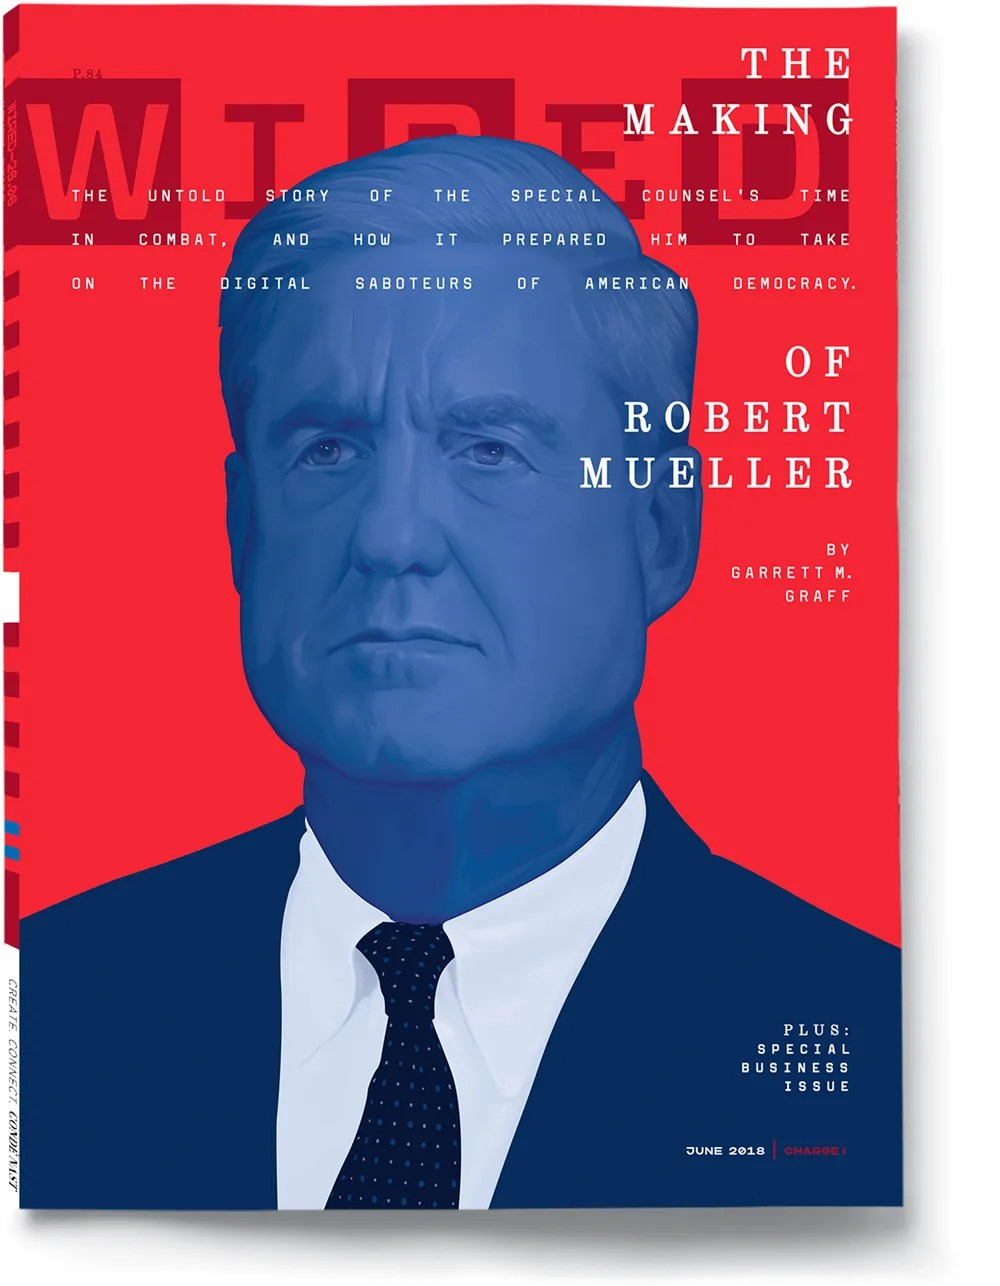 wake me up inside skeleton chair meme pool float chairs the untold story of robert mueller s time in vietnam war wired june 2018 subscribe to